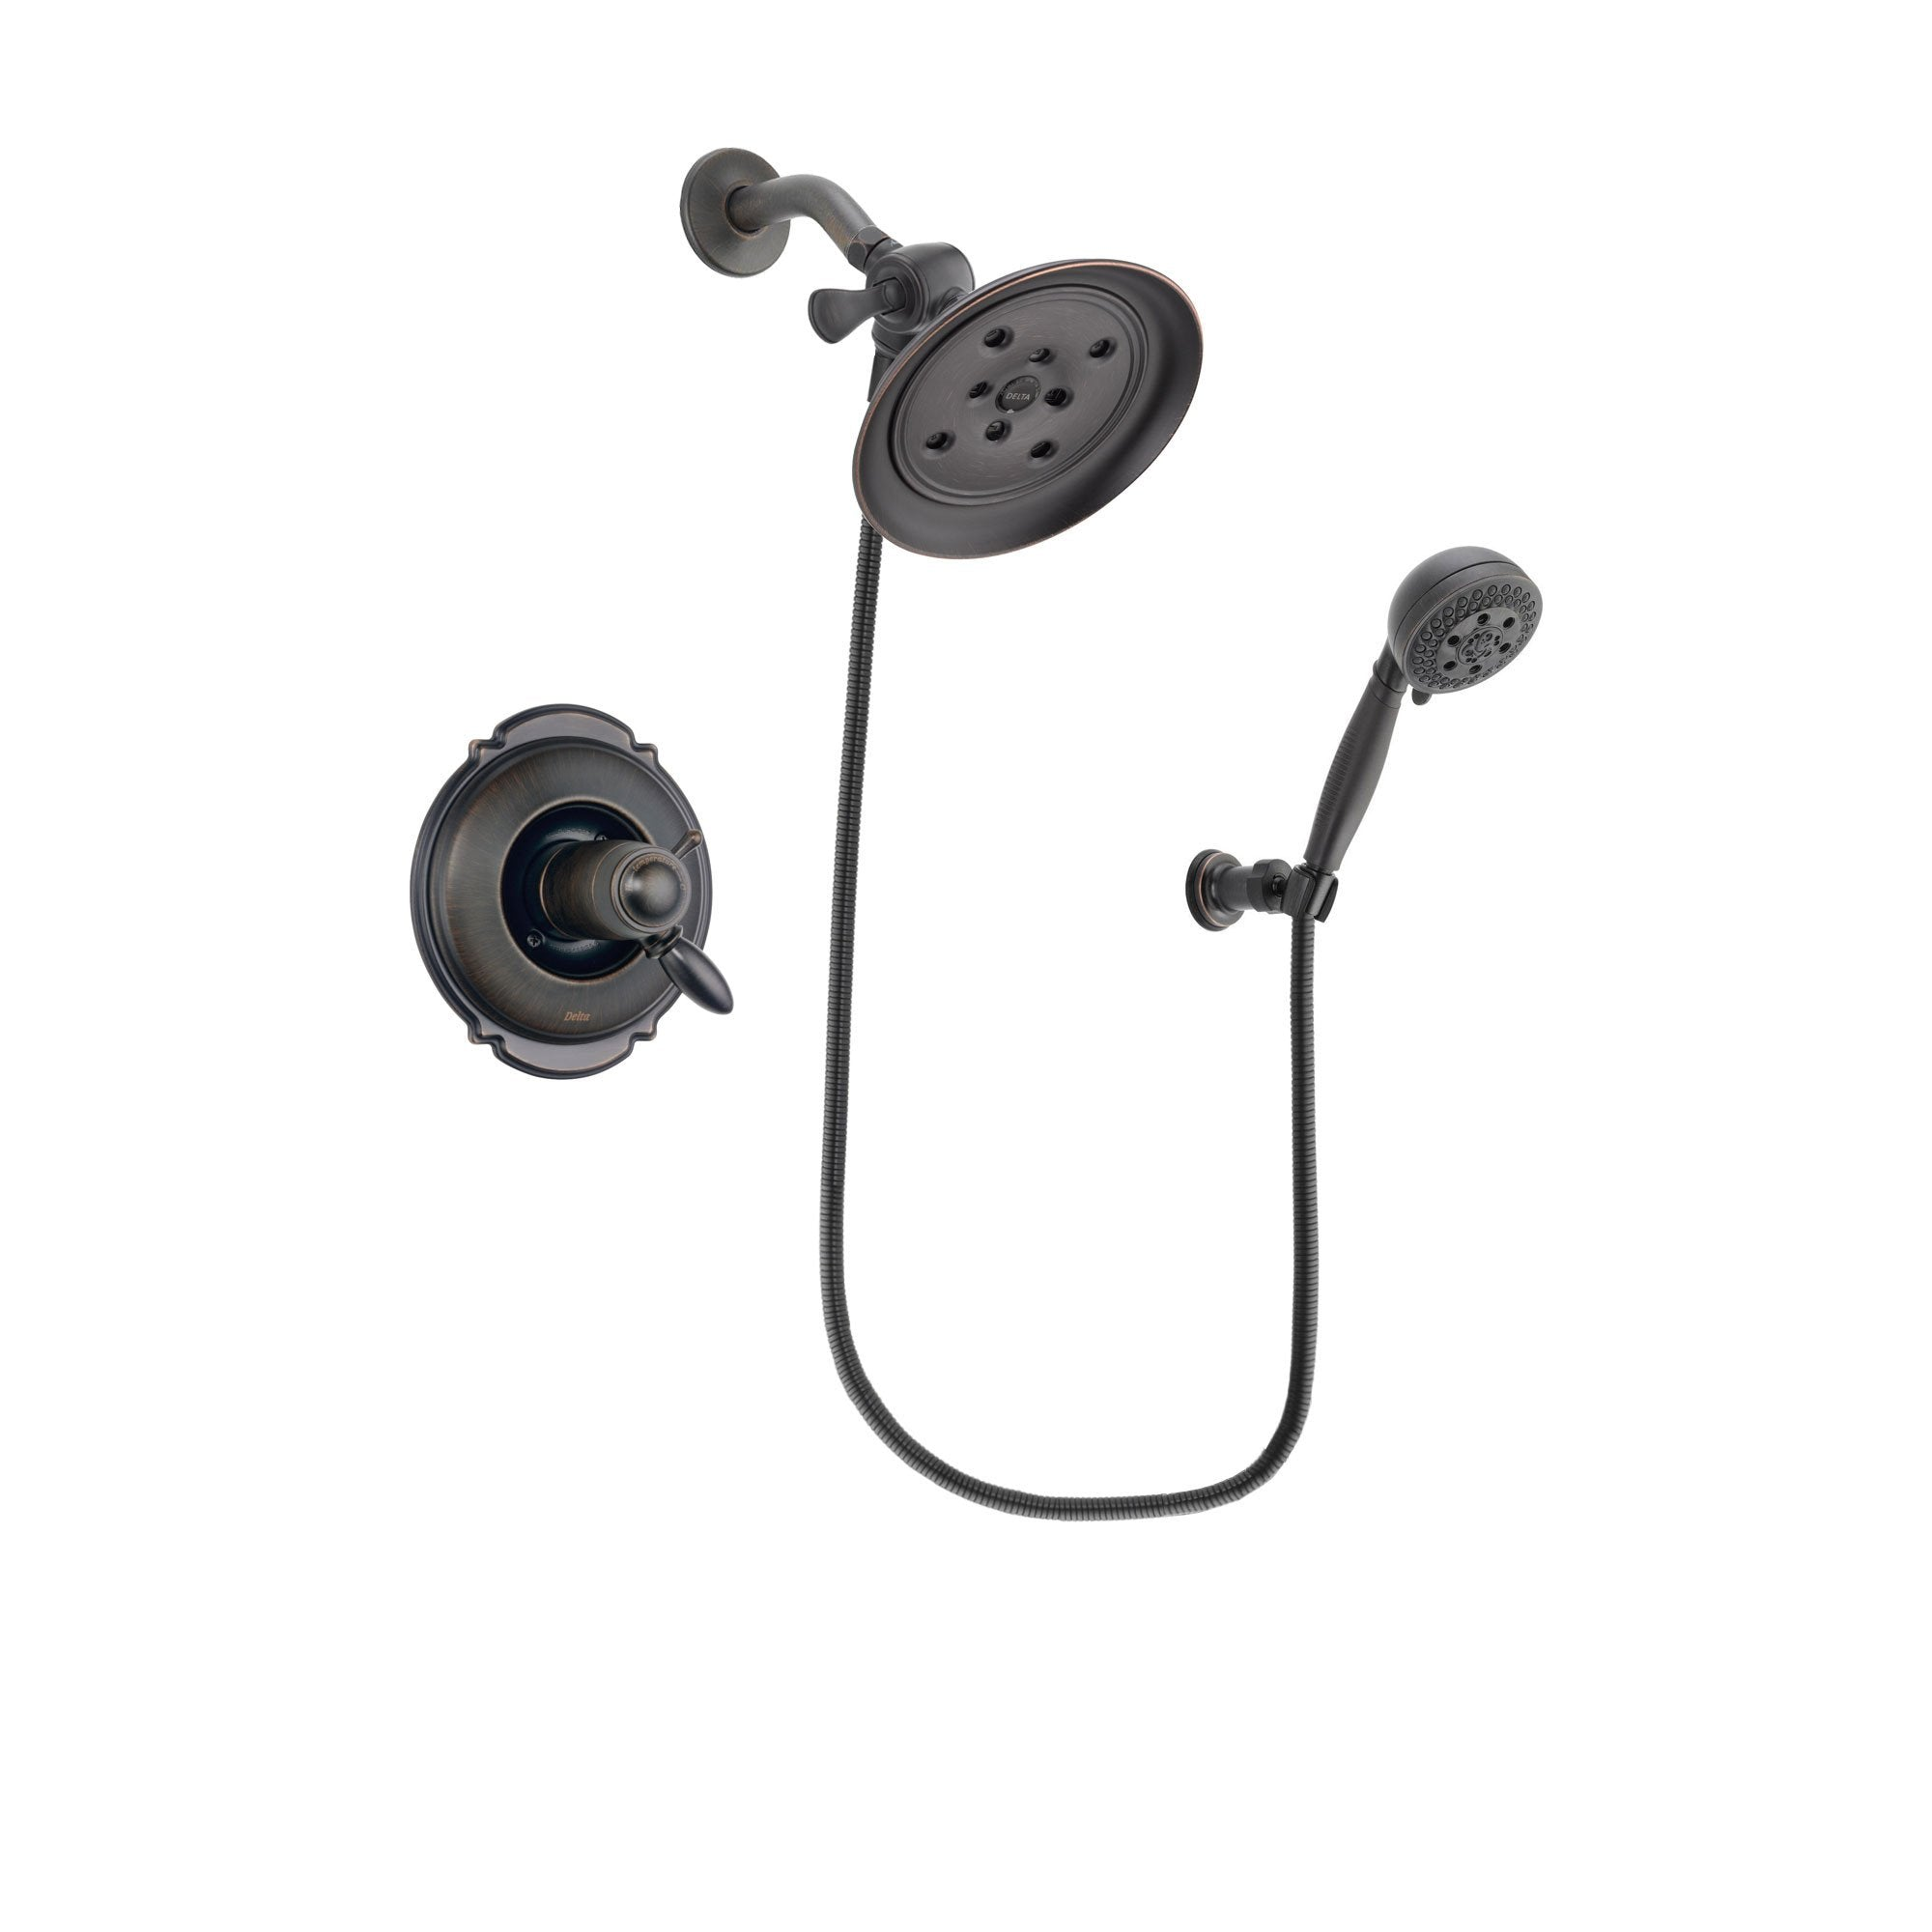 Delta Victorian Venetian Bronze Shower Faucet System with Hand Shower DSP2804V